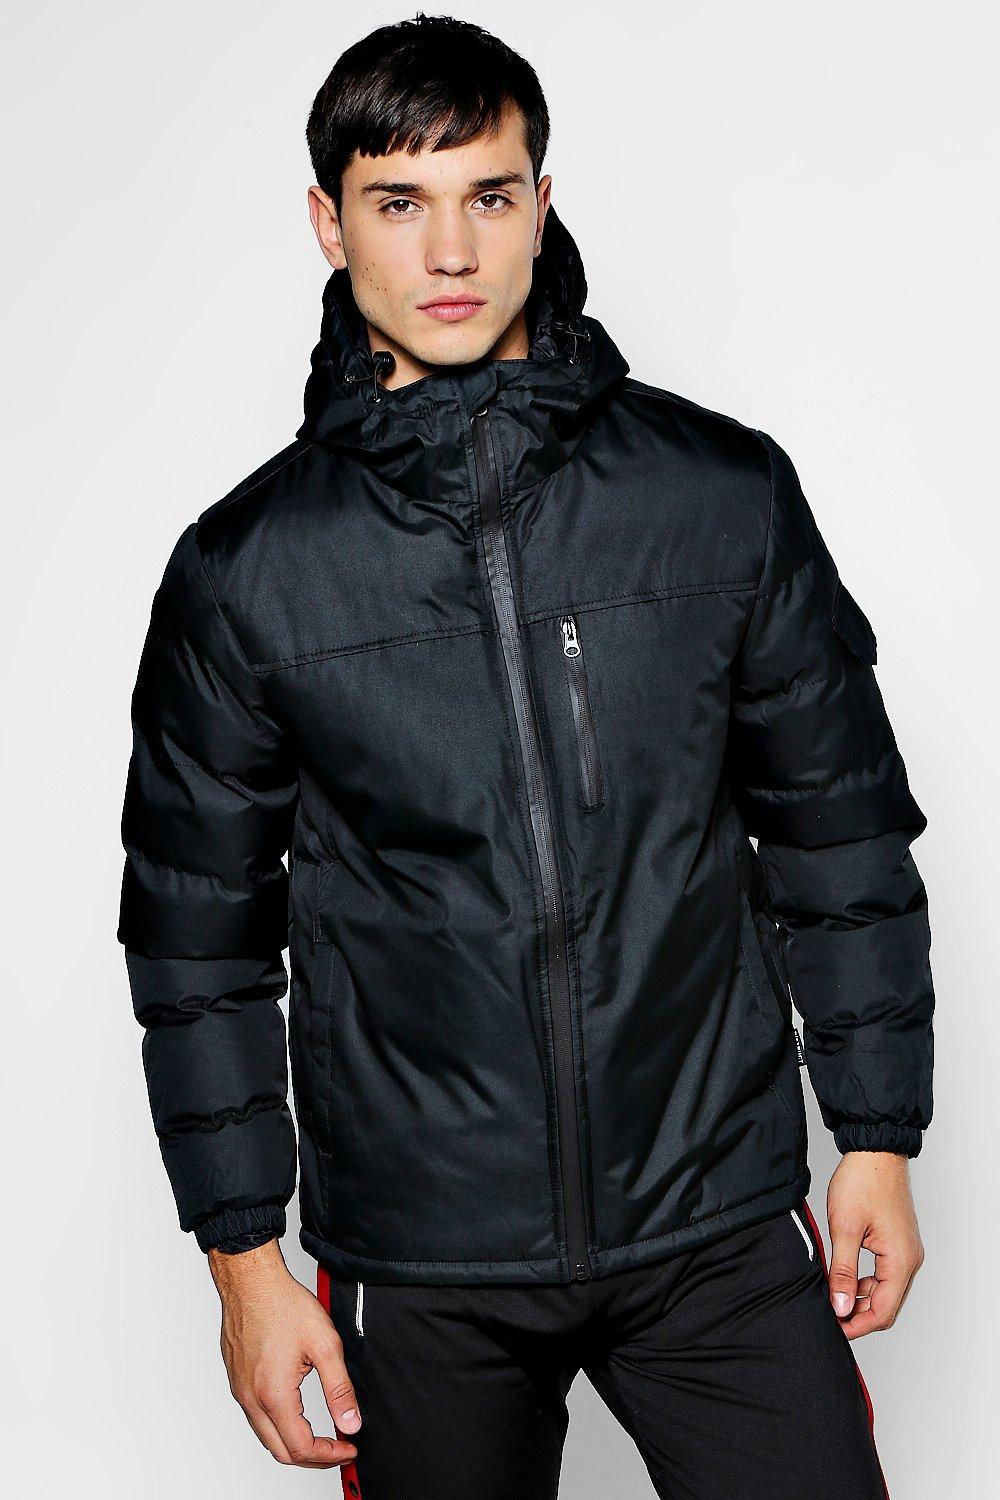 AdCompare Top Deals On Mens Coats. Get Exclusive Offers Now.